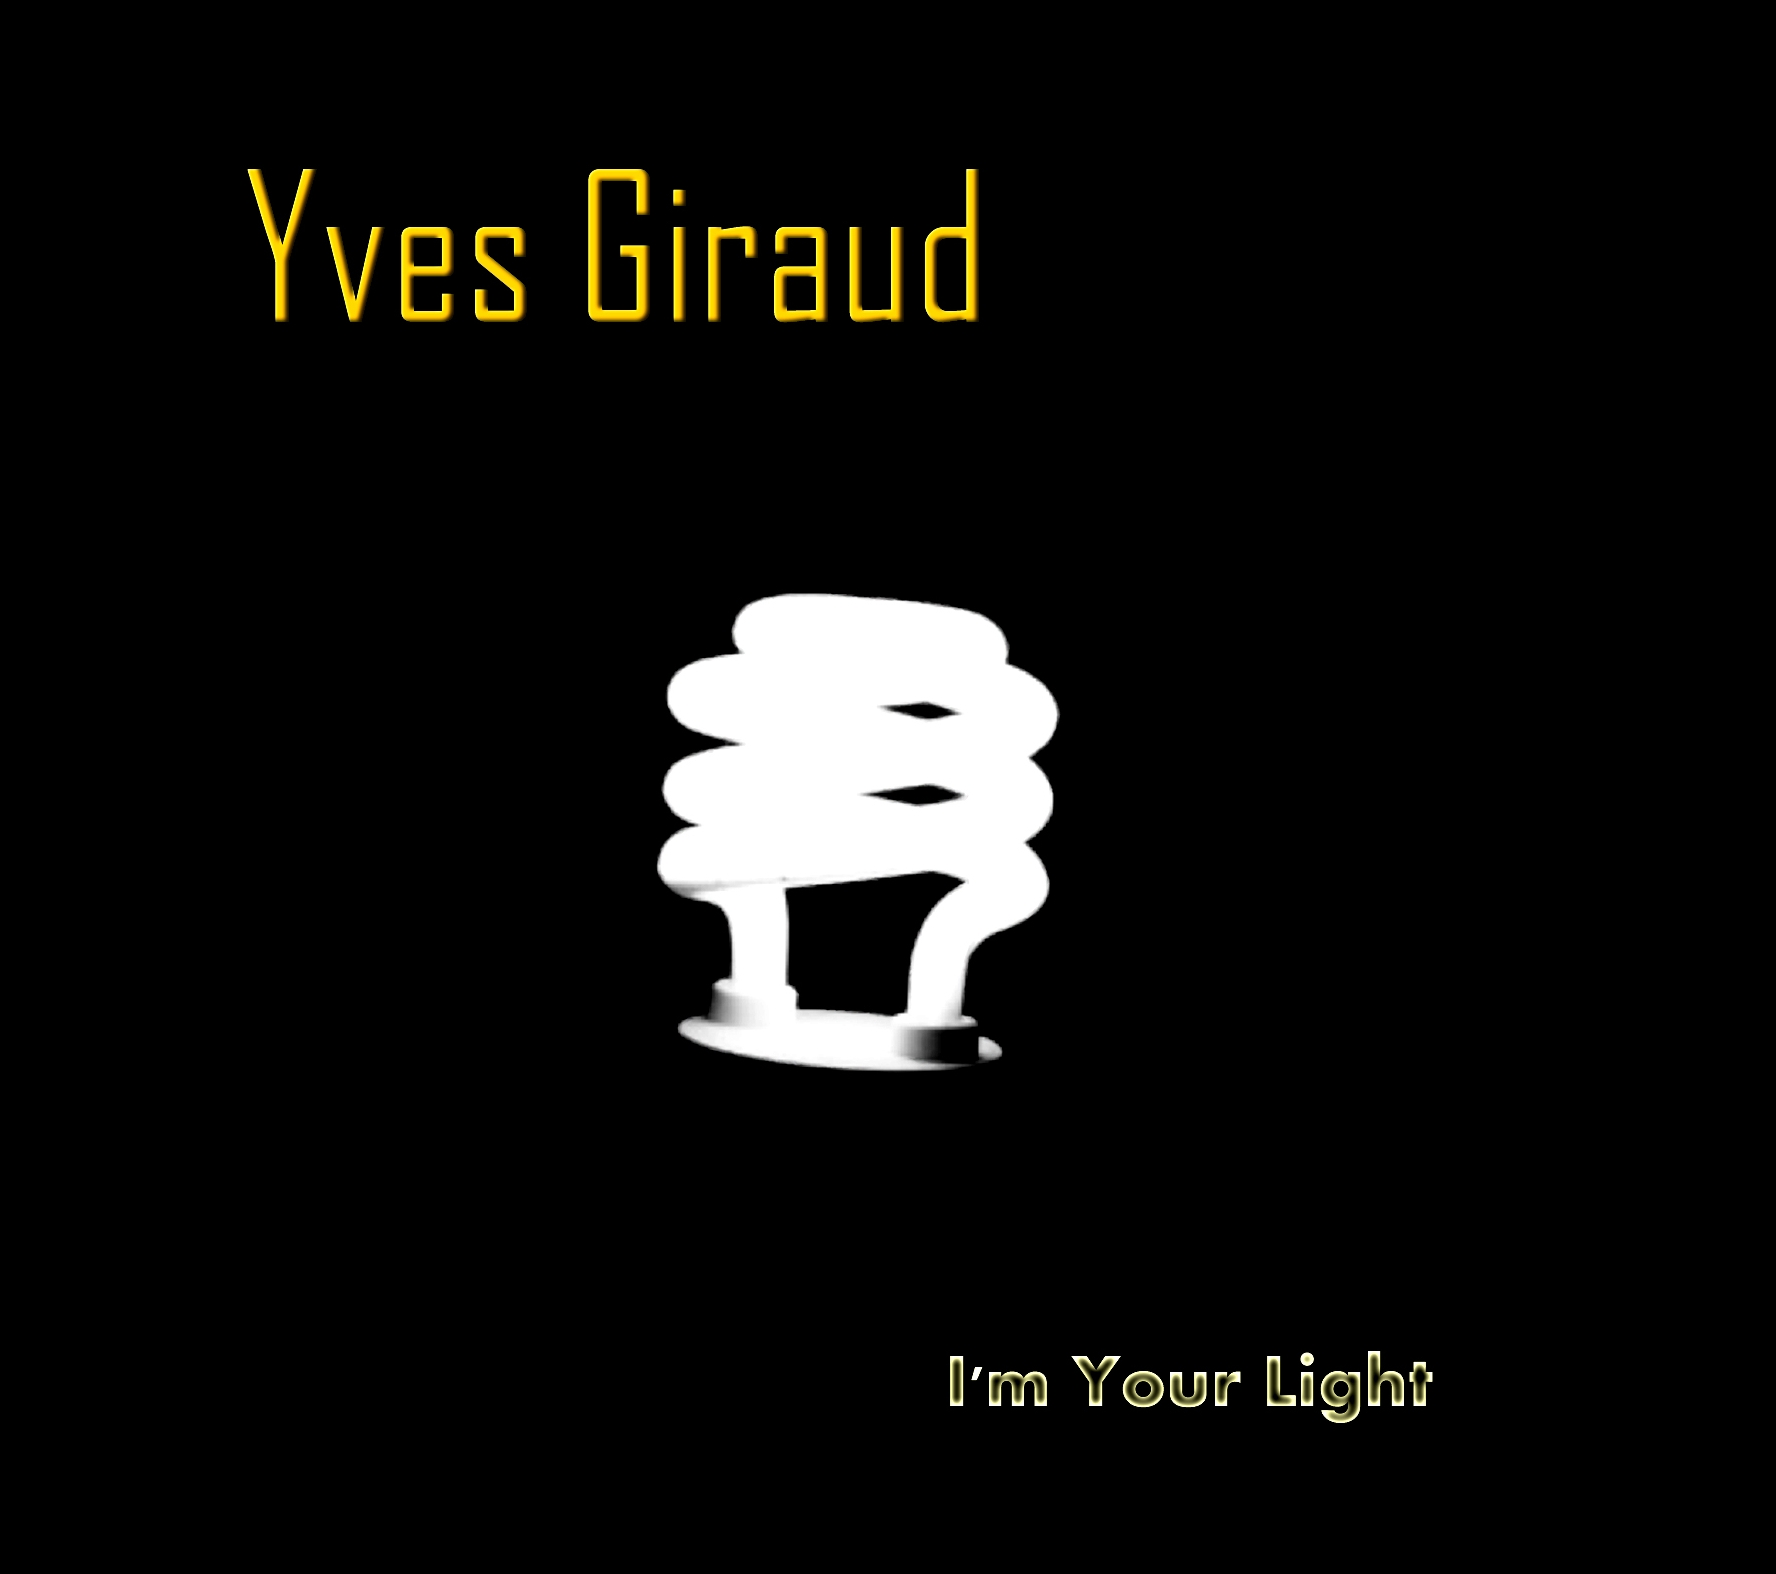 I'm Your Light  - 11 original songs recorded at Reseda Ranch Studios in Los Angeles, California.  Recorded and co-produced by Fernando Perdomo. Release year: 2015.